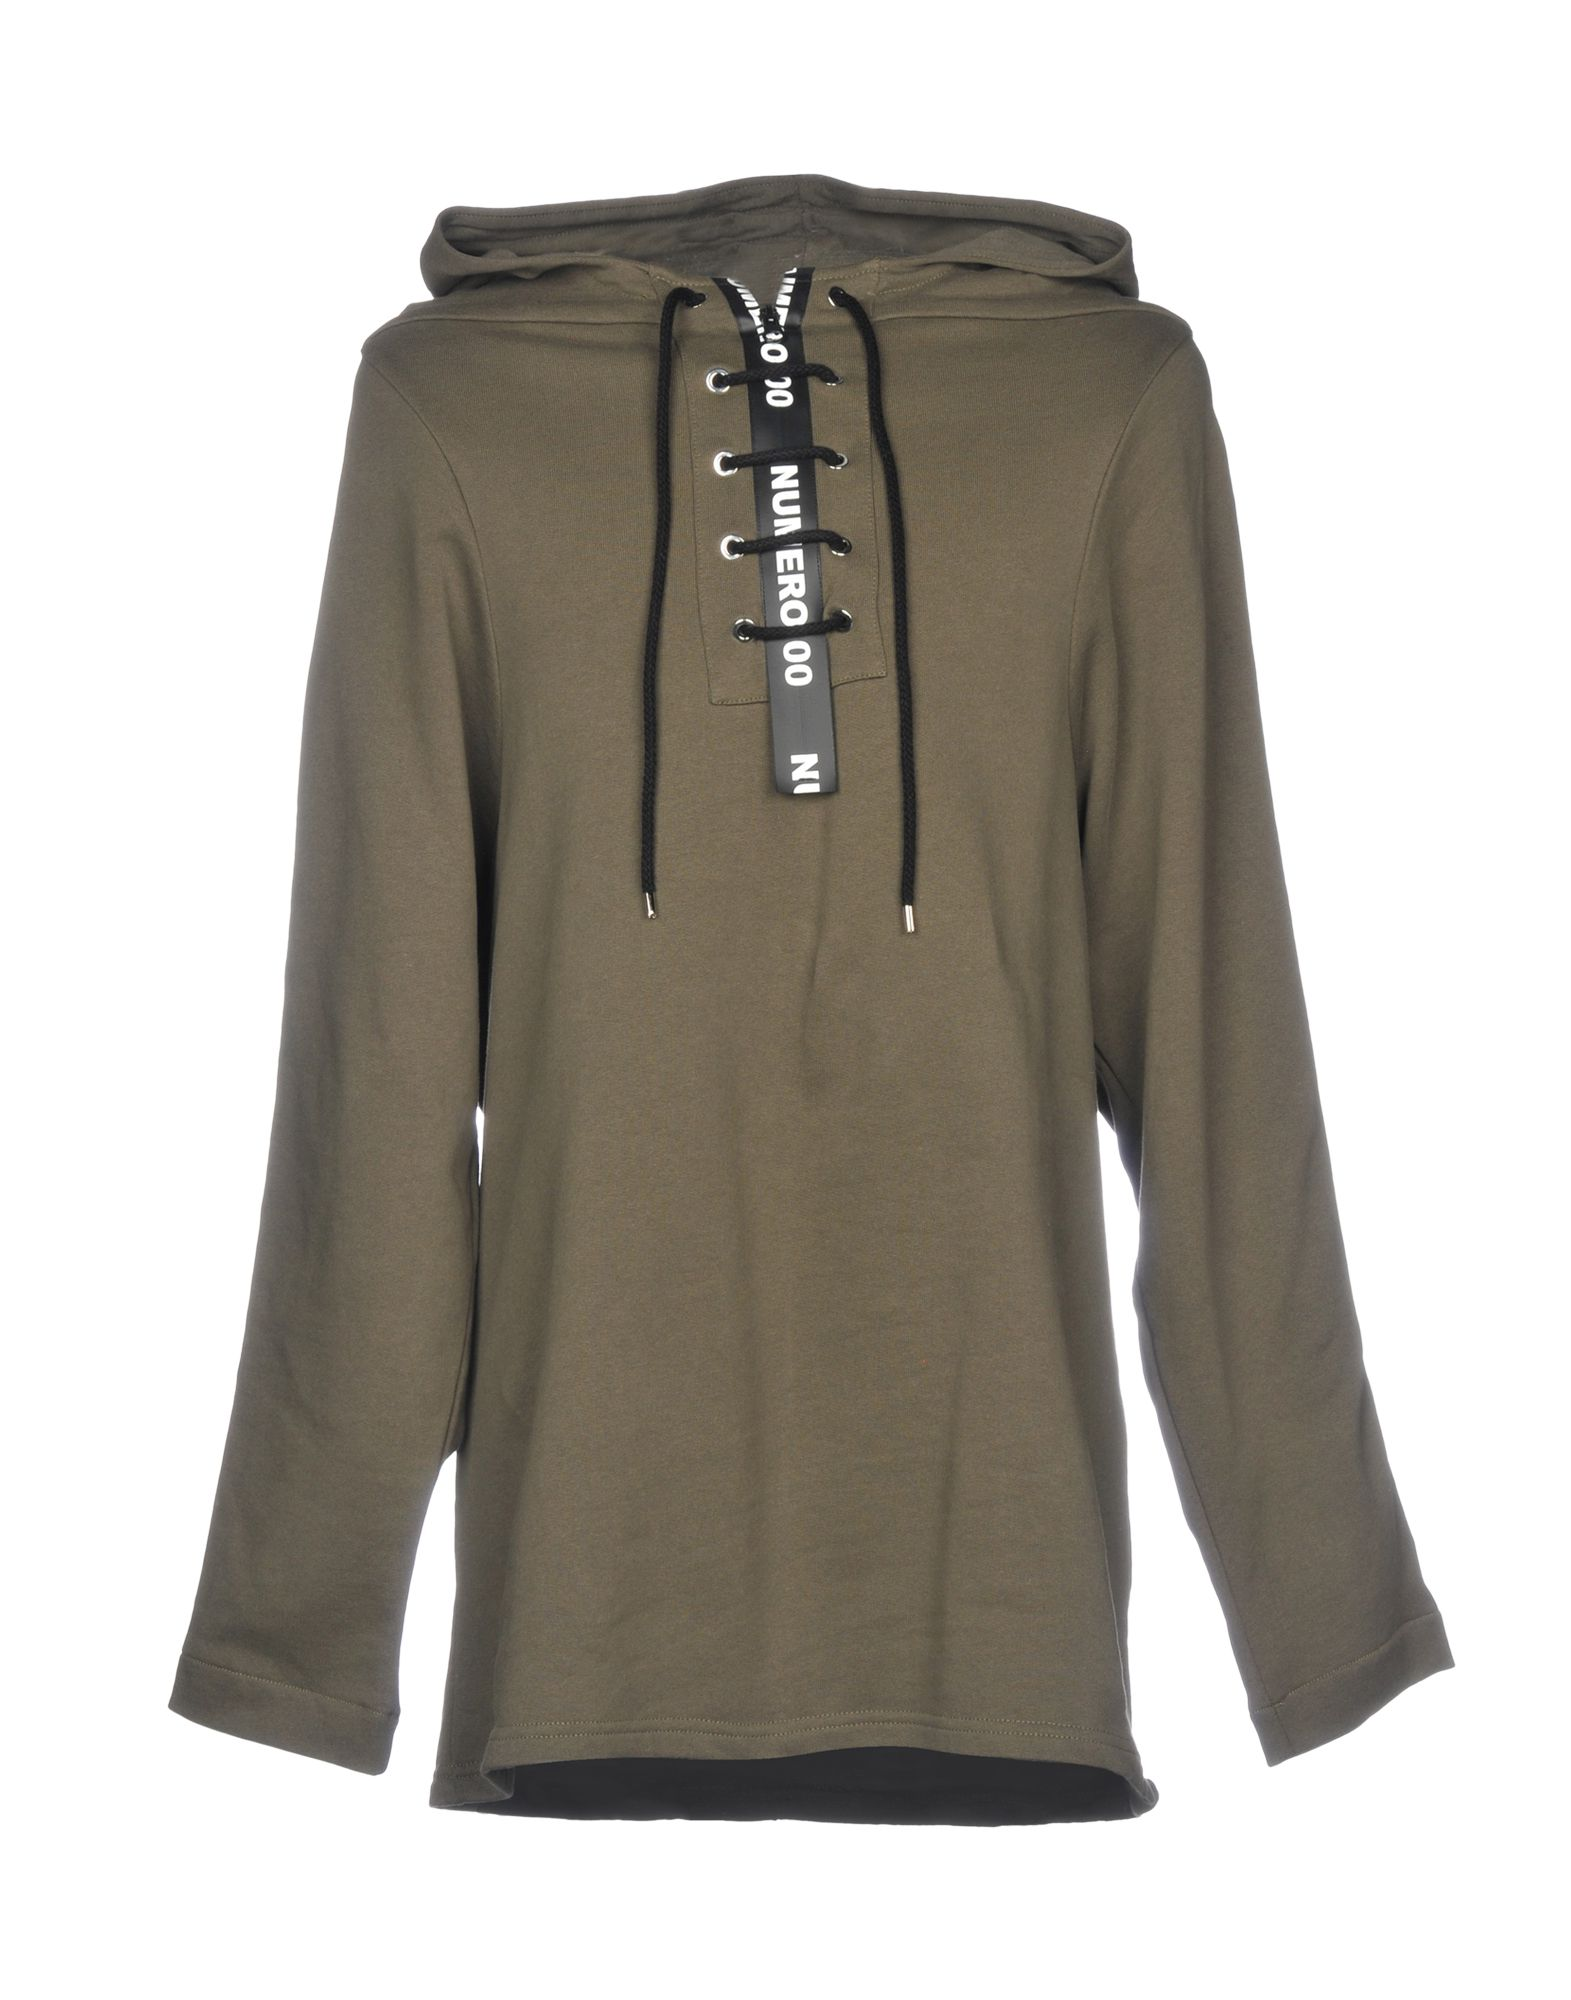 NUMERO00 Hooded Sweatshirt in Military Green